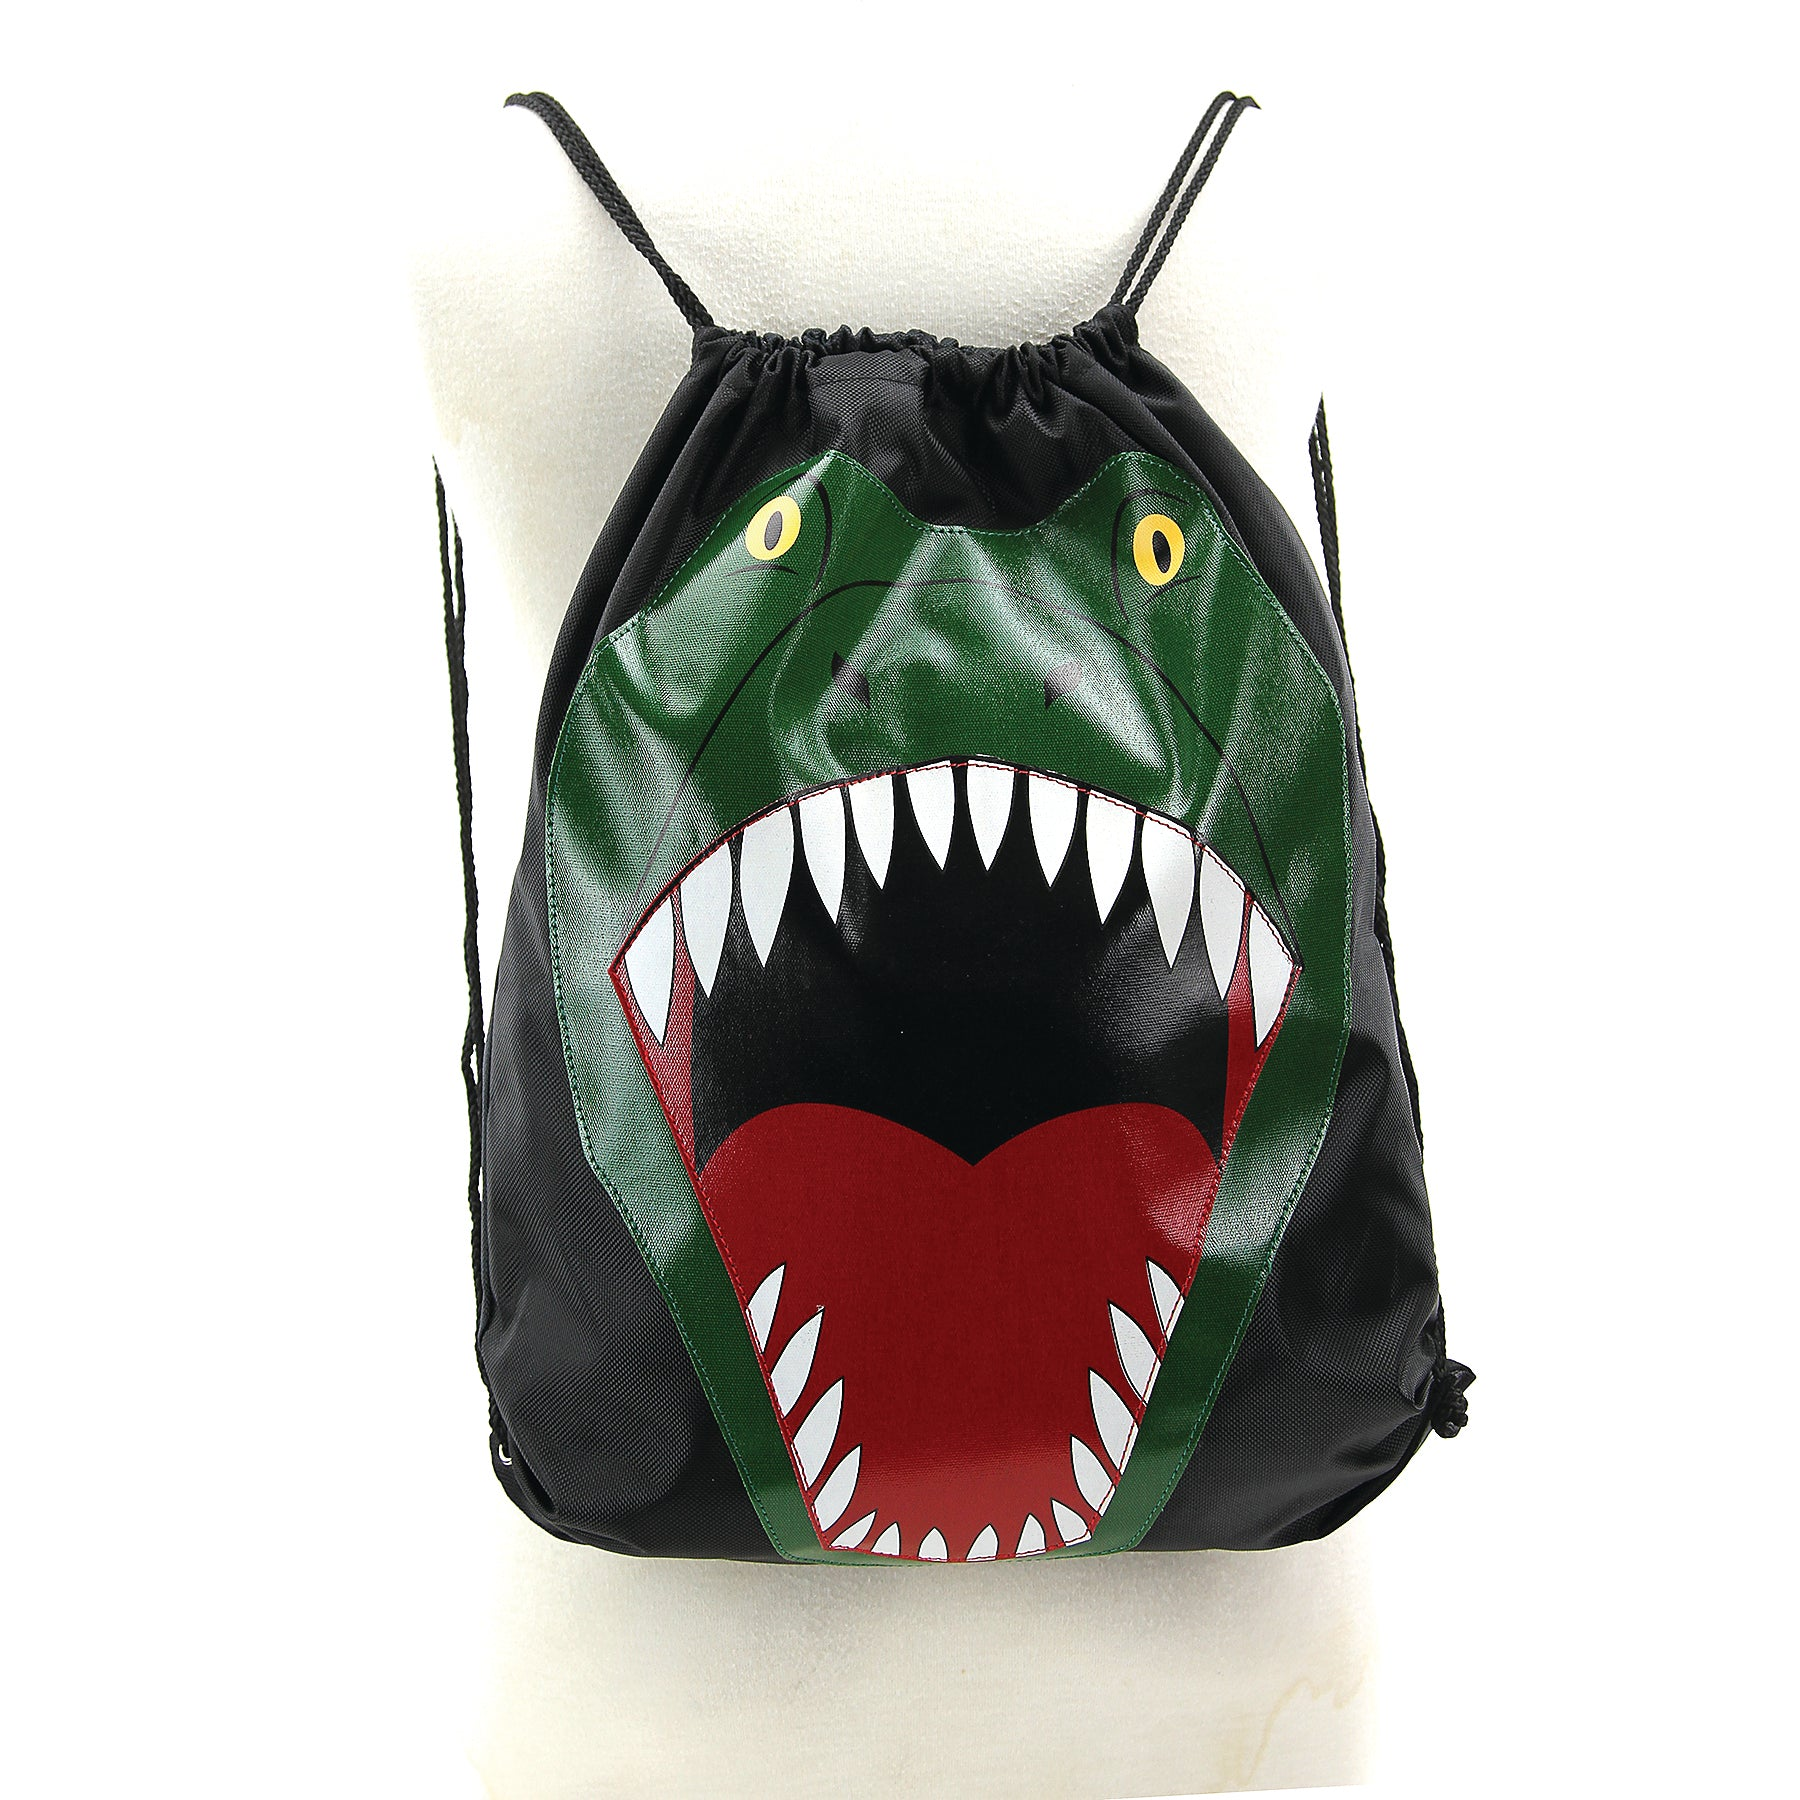 Dinosaur Sling Bag in Nylon front view